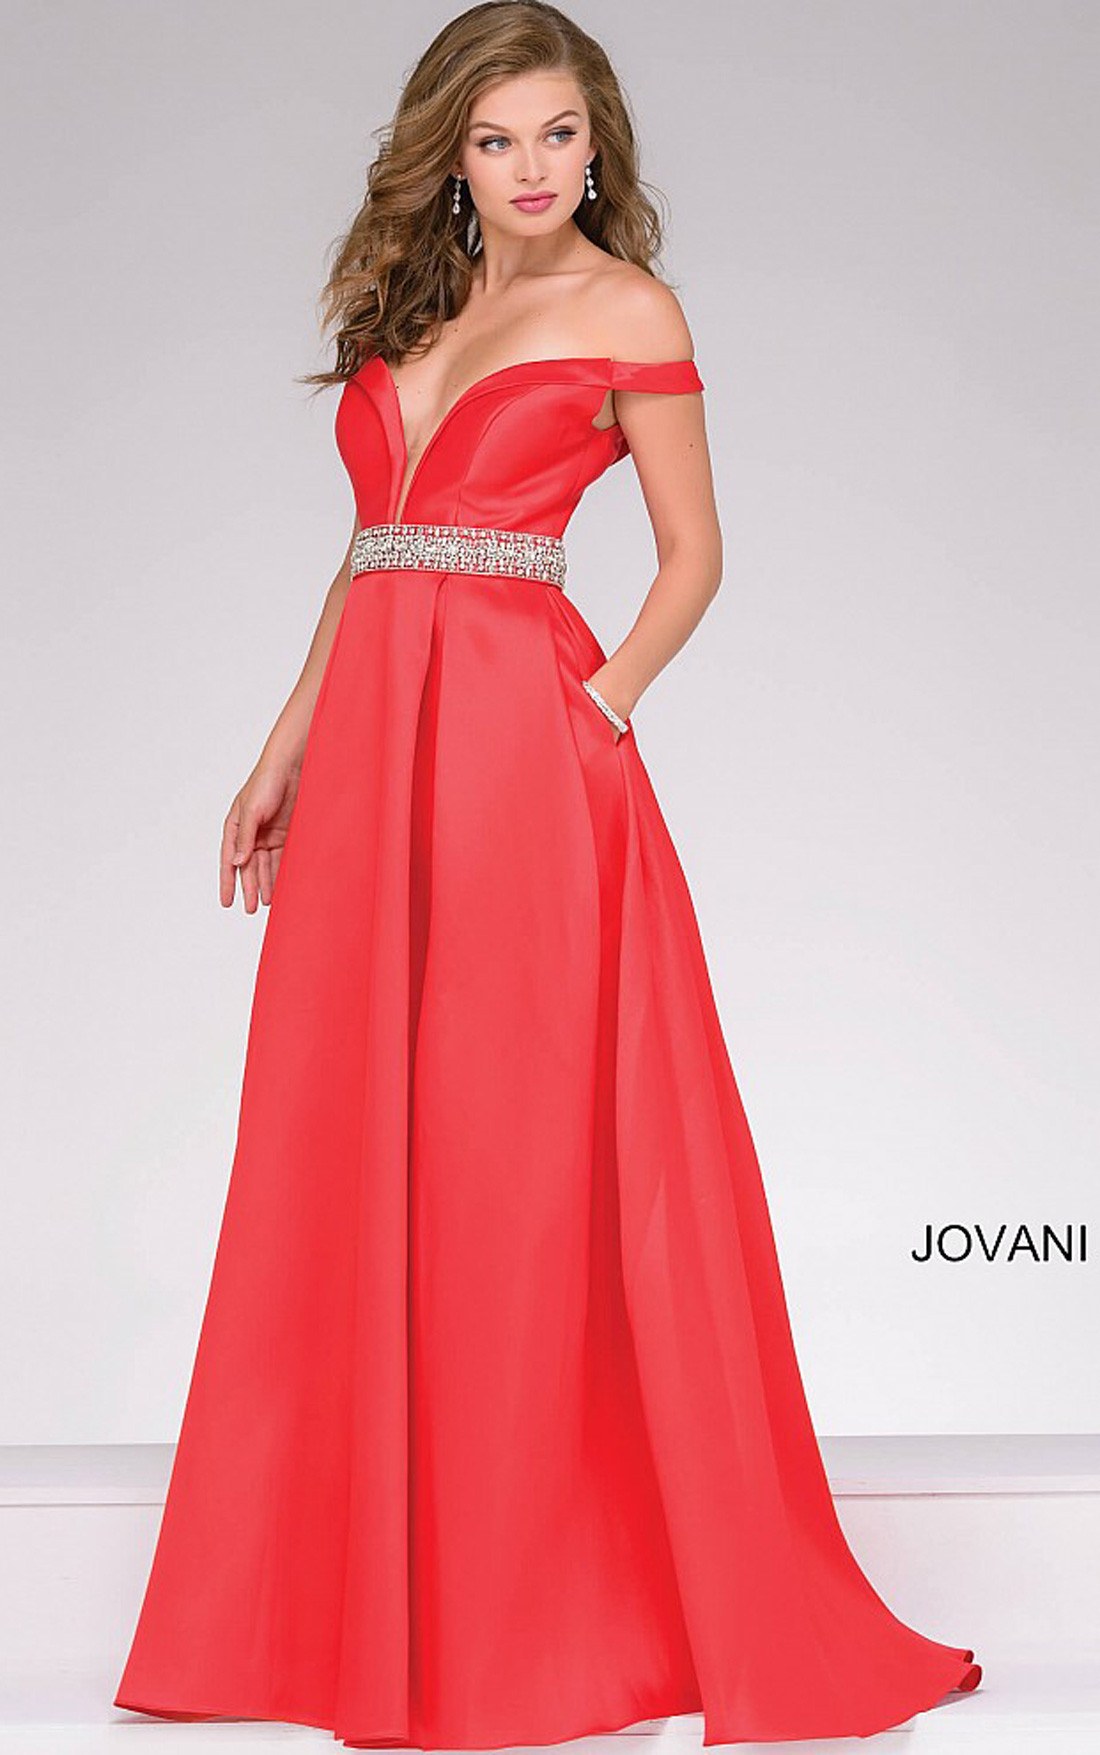 Jovani Dresses | Womens Red Off the Shoulder Ballgown | Womens ...